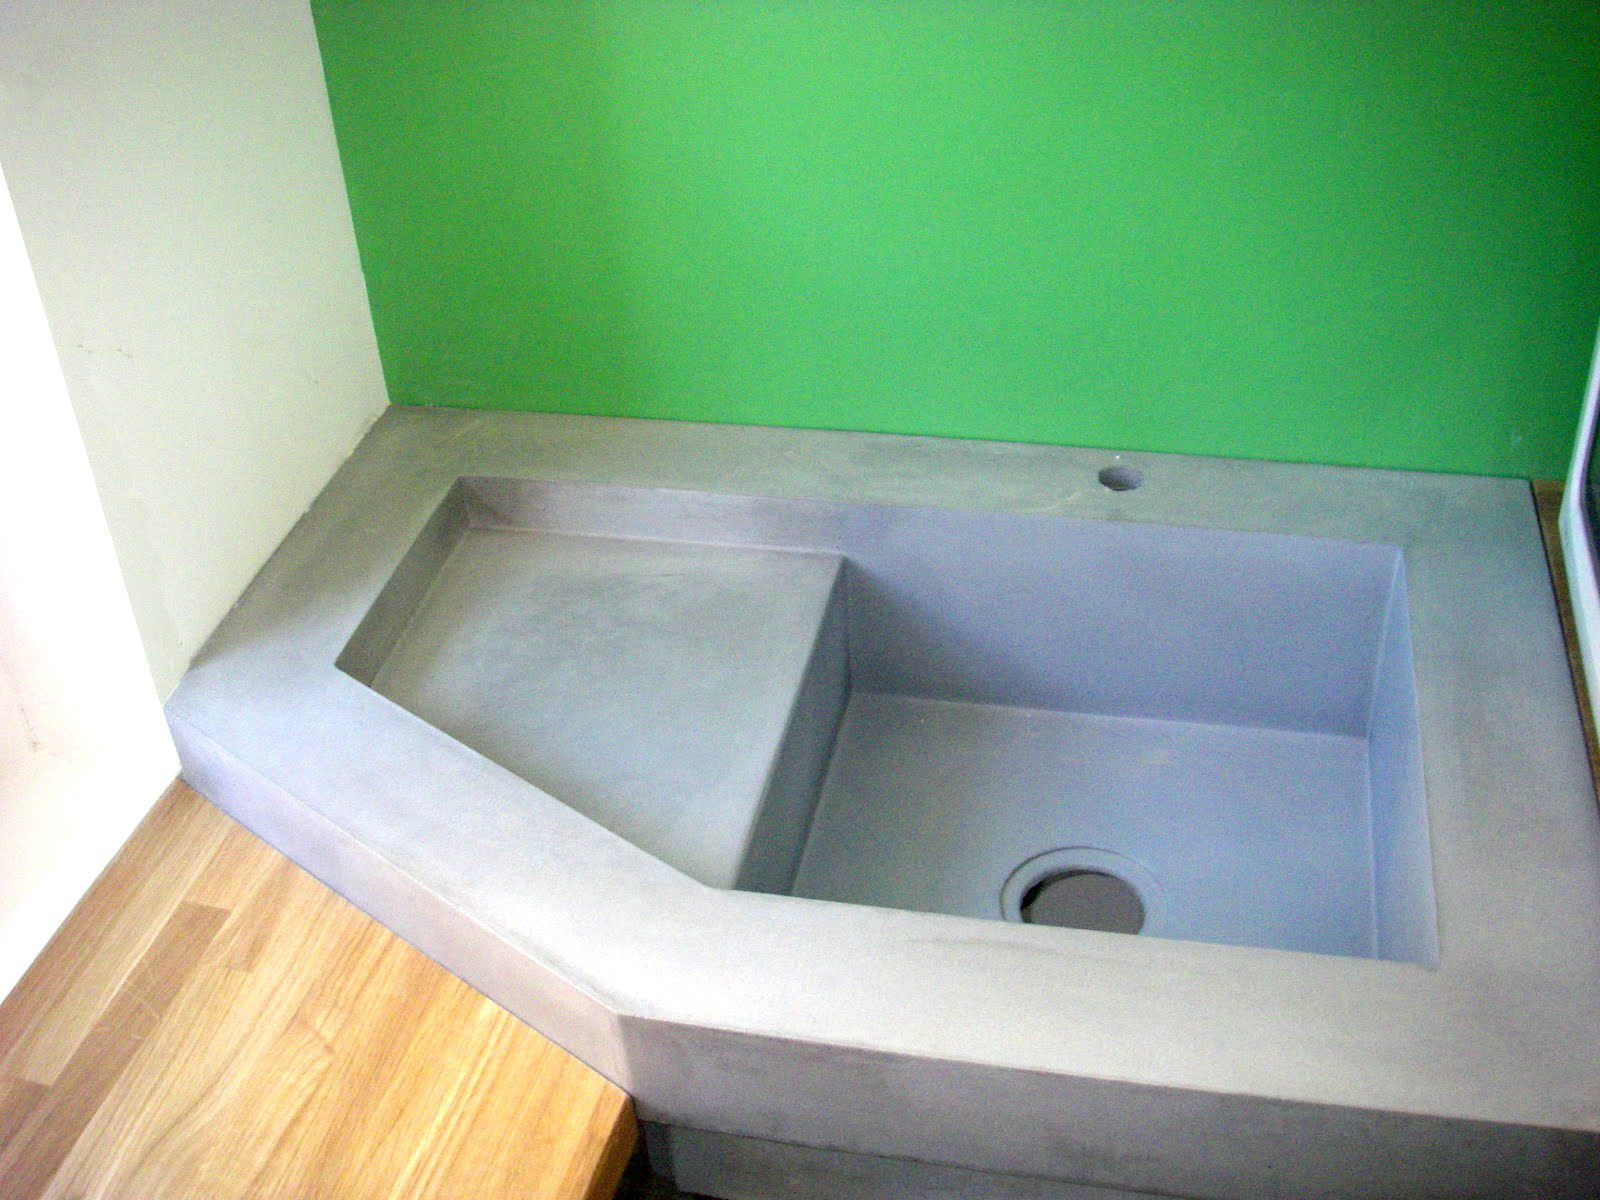 Single-bowl kitchen sink / Ductal® UHP concrete / with drainboard ...